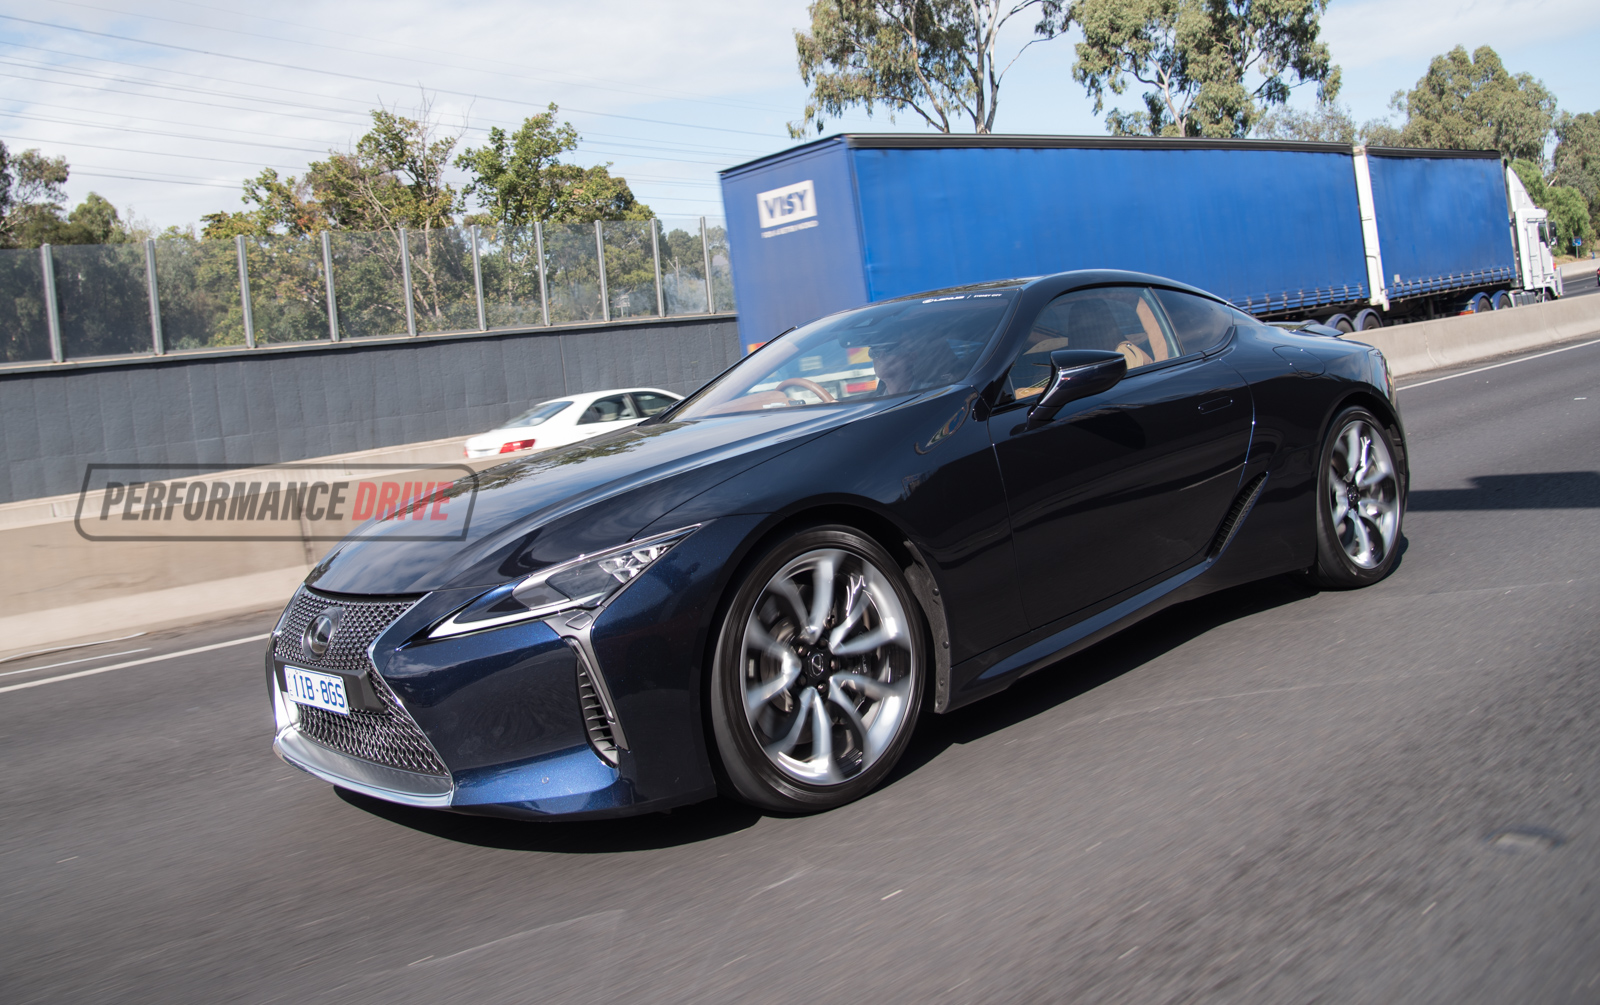 new lexus lc 500 spotted on the streets in australia performancedrive. Black Bedroom Furniture Sets. Home Design Ideas